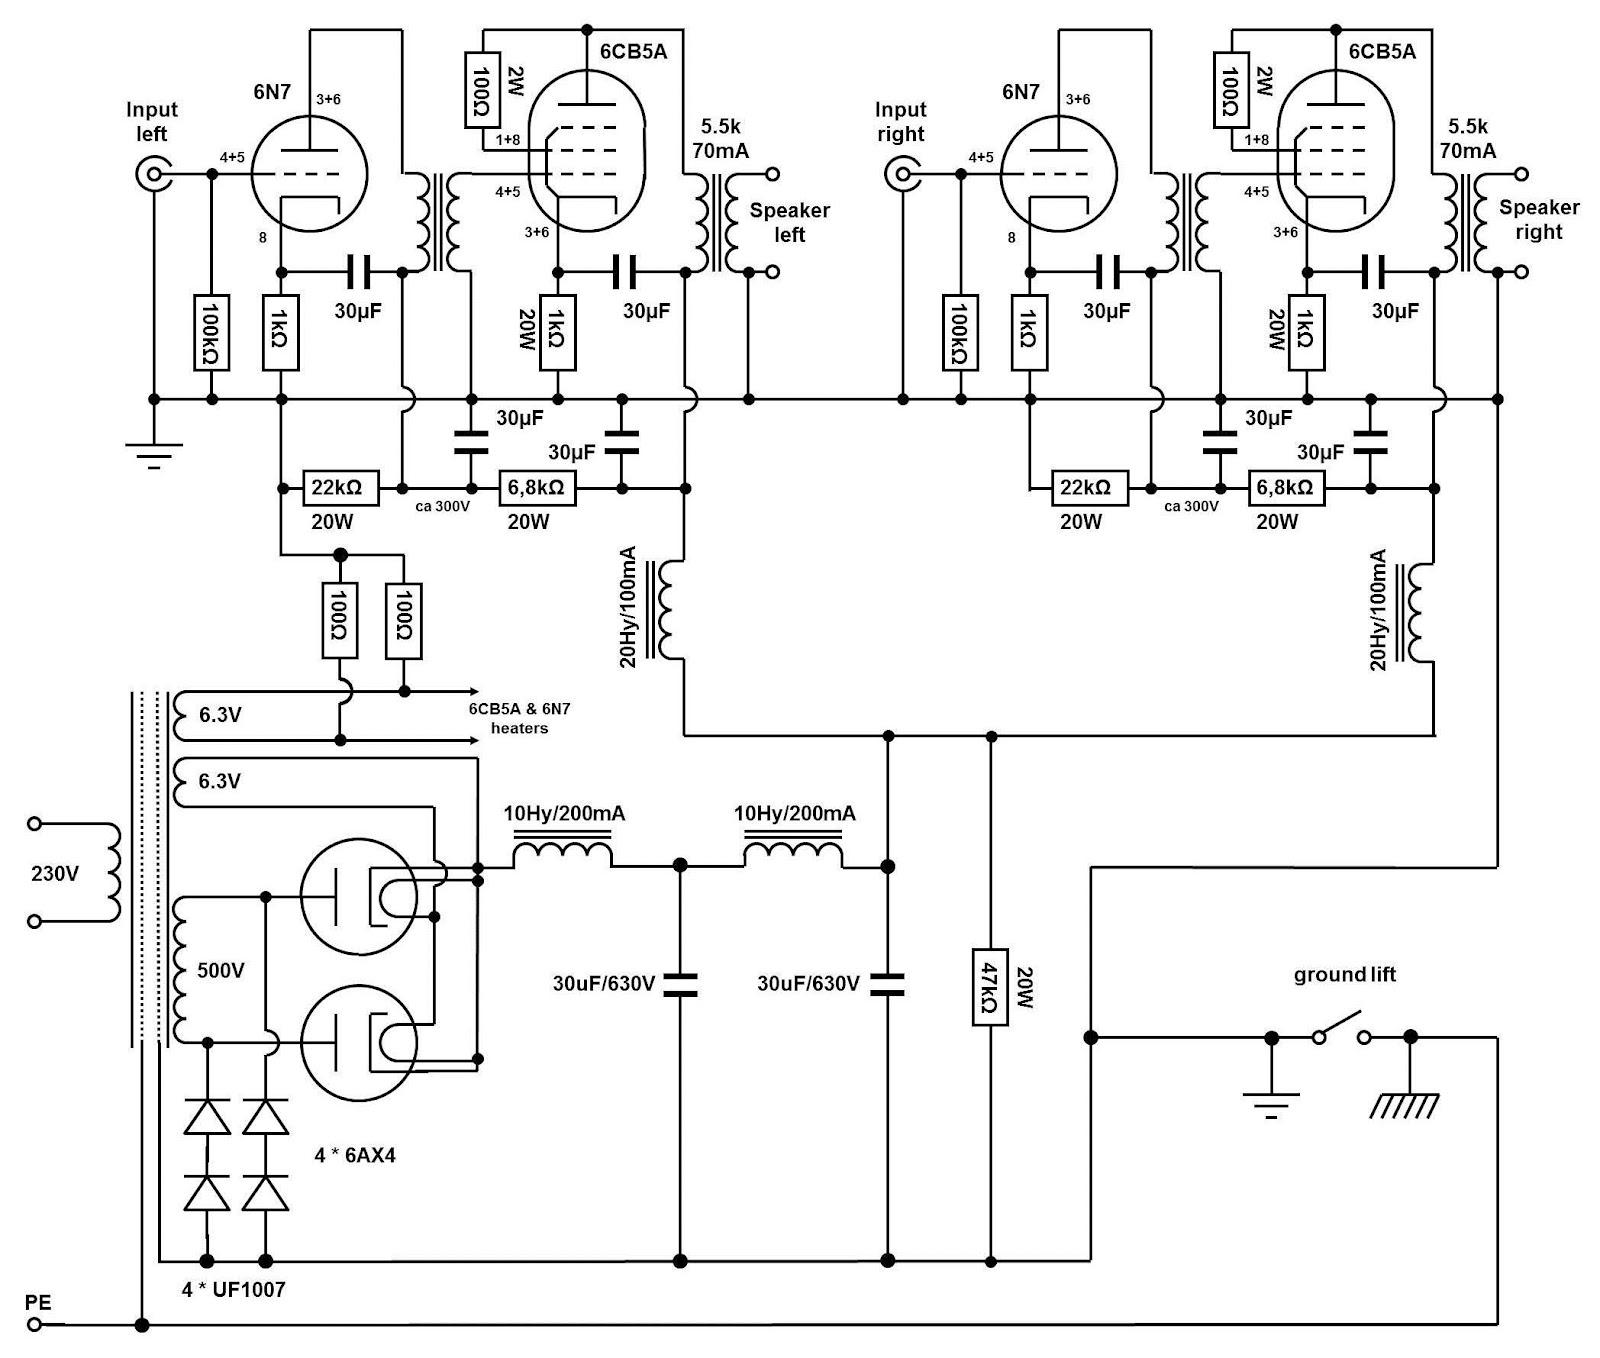 vinylsavor  making of a se 6cb5a amplifier  circuit